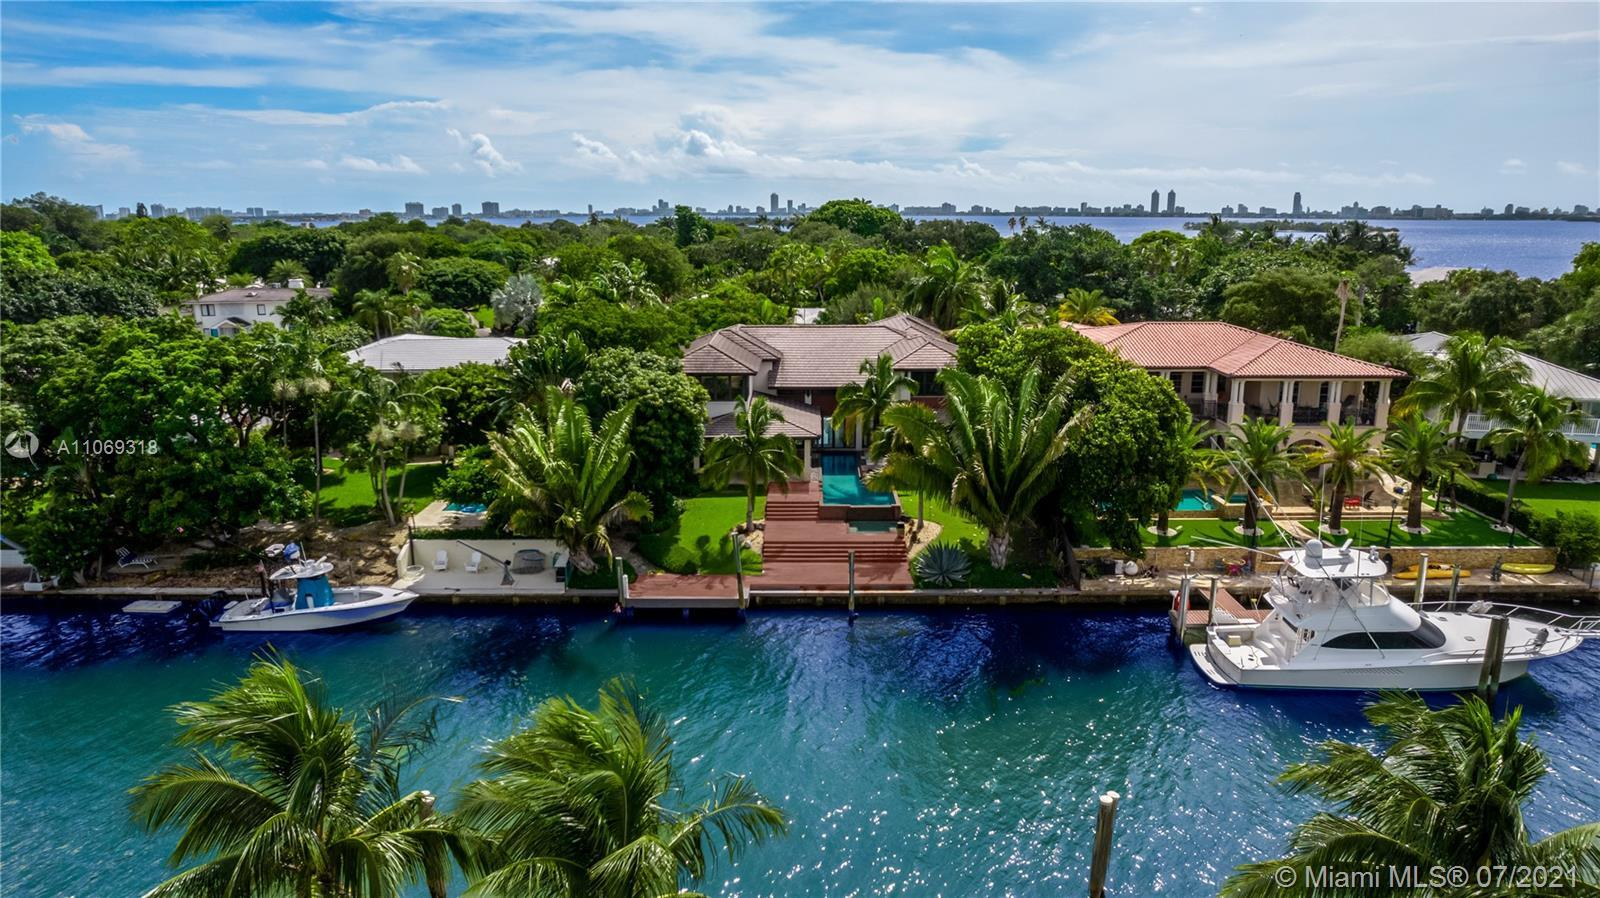 Boater's dream with direct access to the Bay in the most exclusive private island at the upscale gat